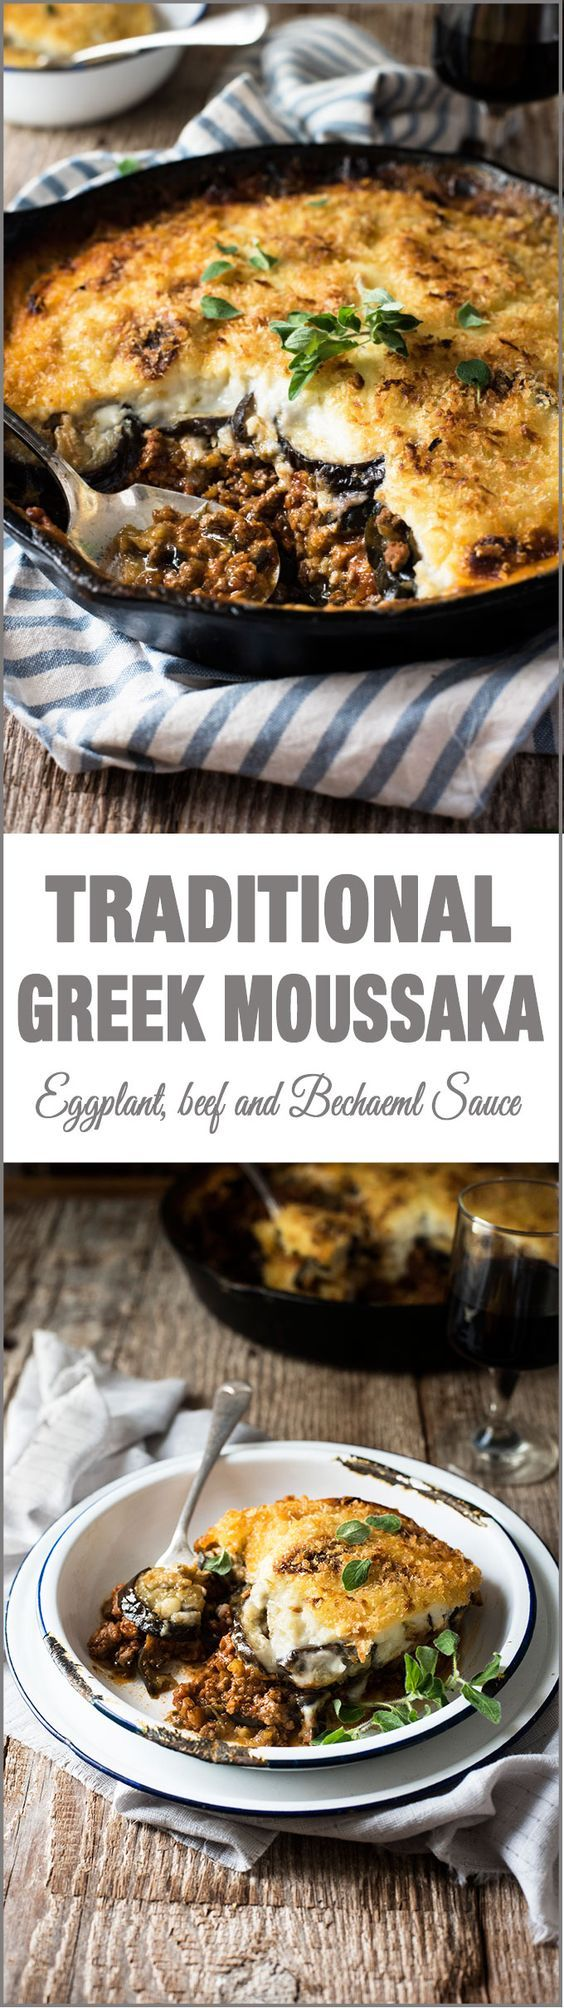 Traditional Greek Moussaka - Layers of eggplant with beef in tomato sauce and topped with Béchamel Sauce. Authentic classic Greek food!